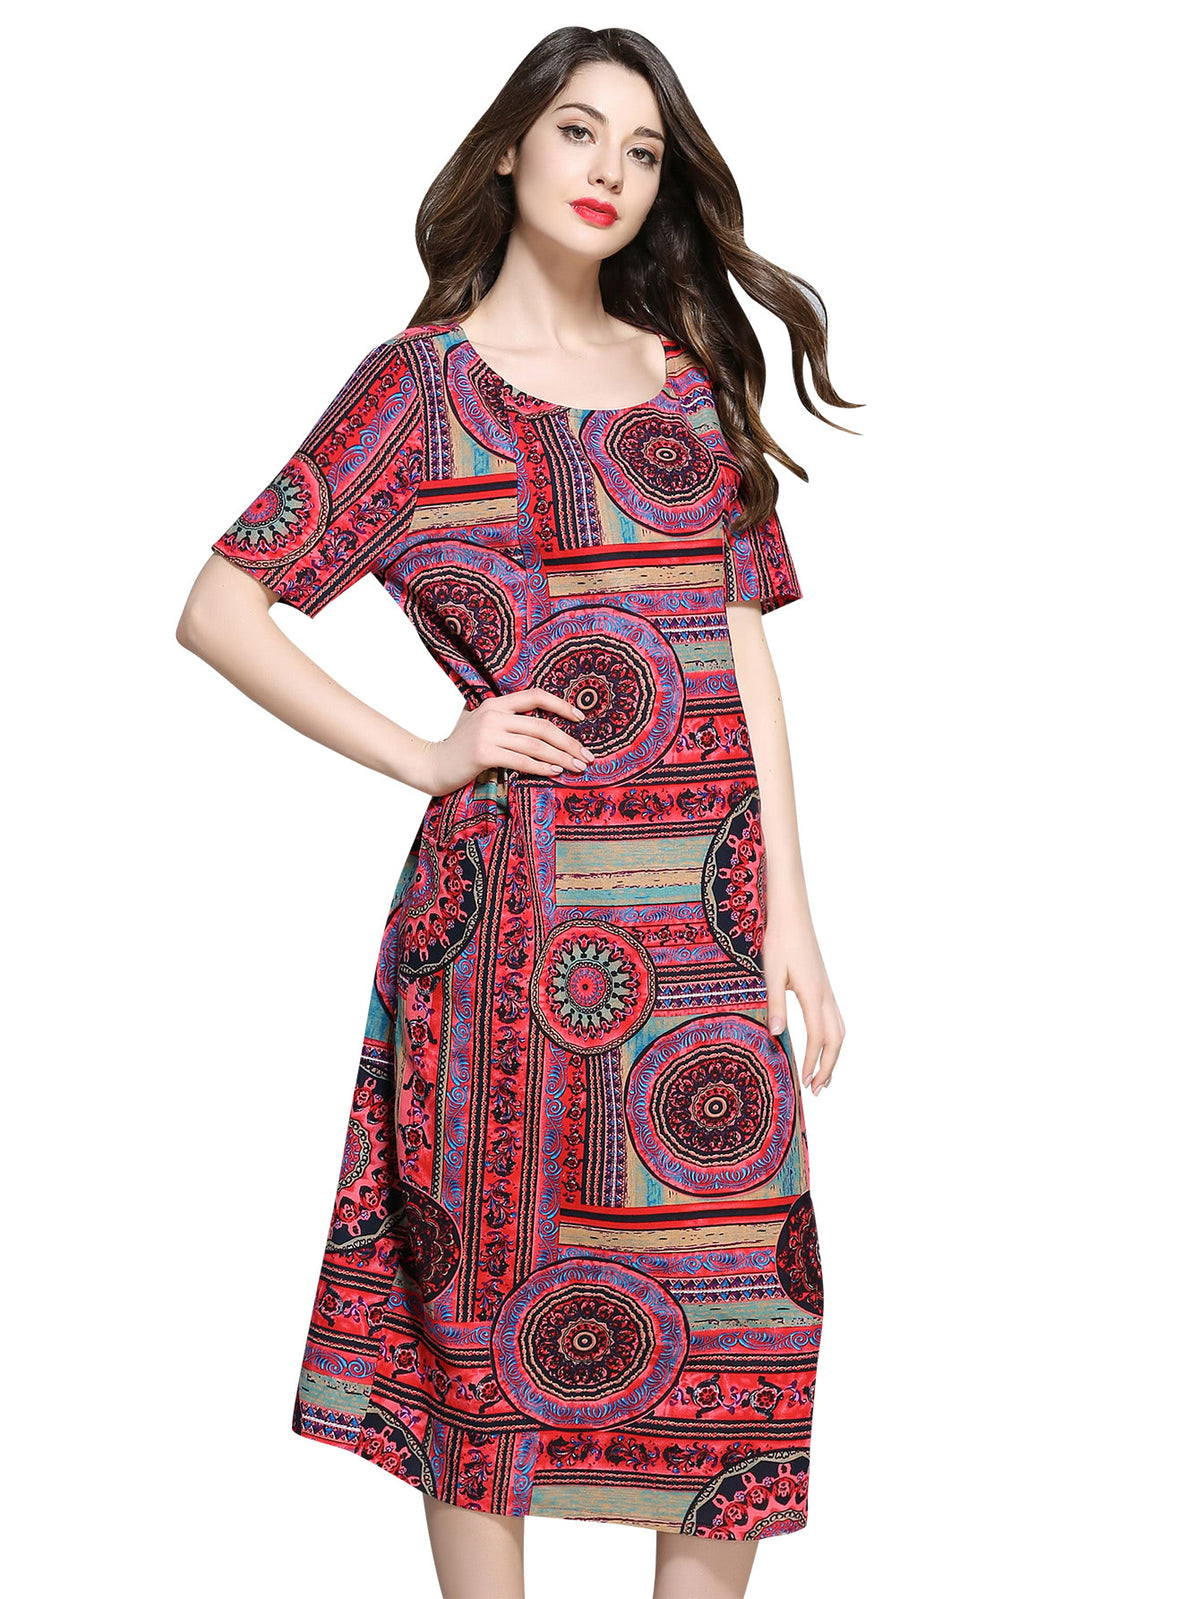 Ornate Print Tunic Dress